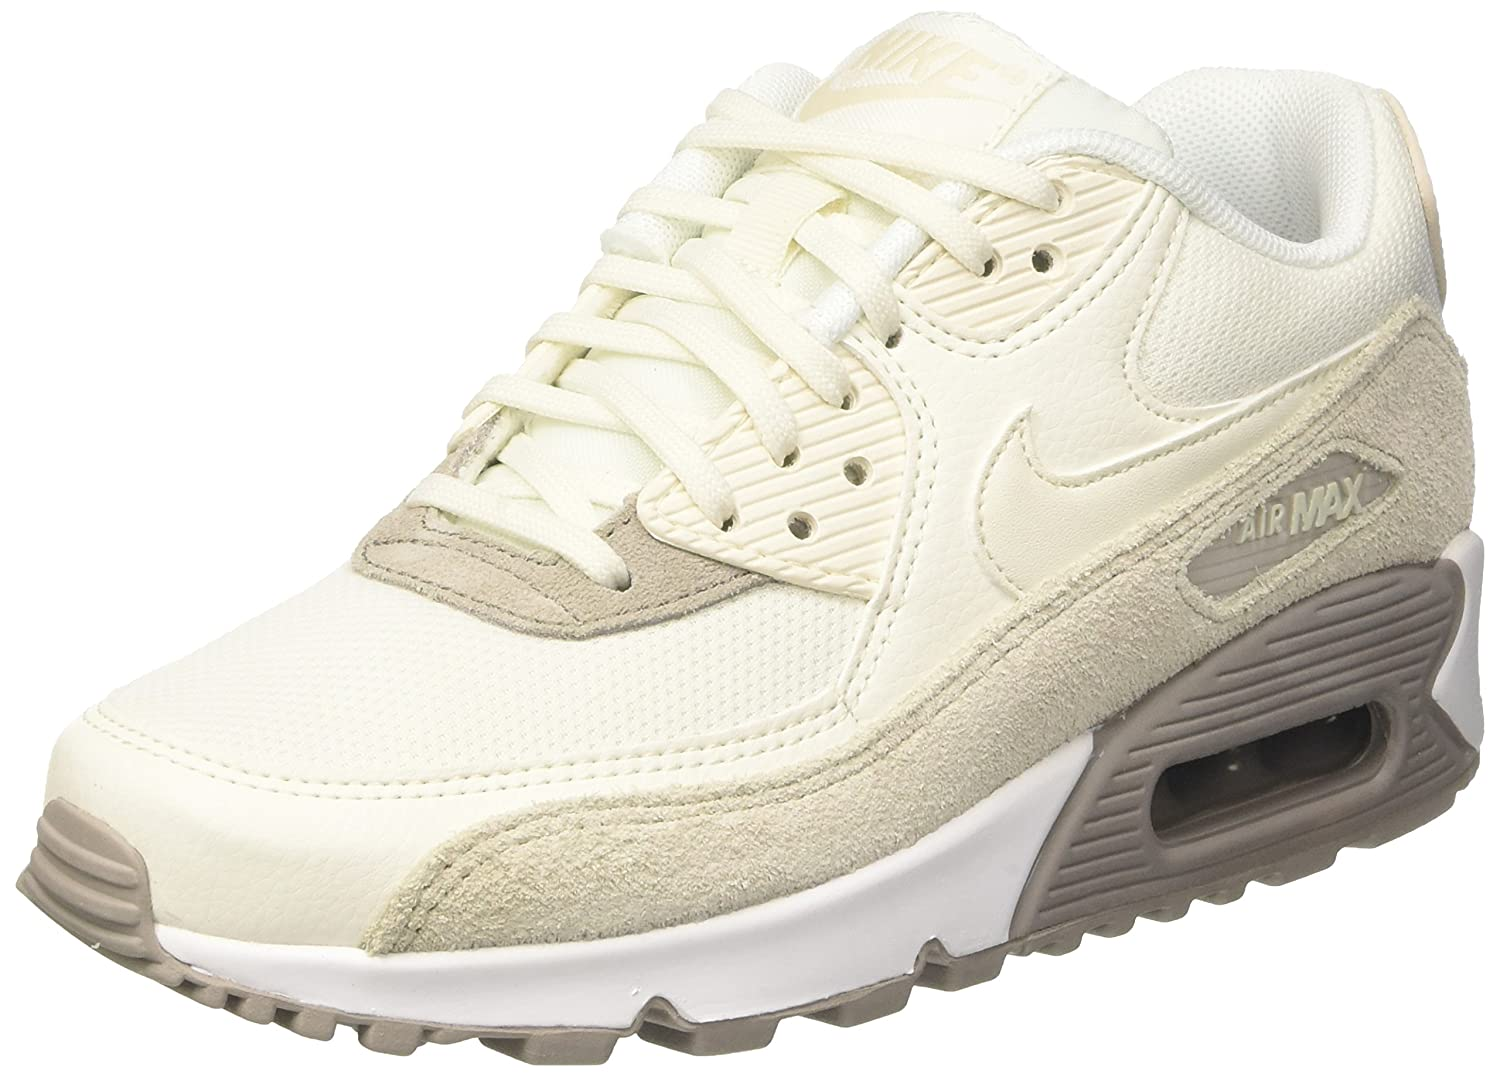 Nike Wmns Air MAX 90, Zapatillas para Mujer 35.5 EU|Beige (Light Orewood Brown/Sail-cobblestone-white)